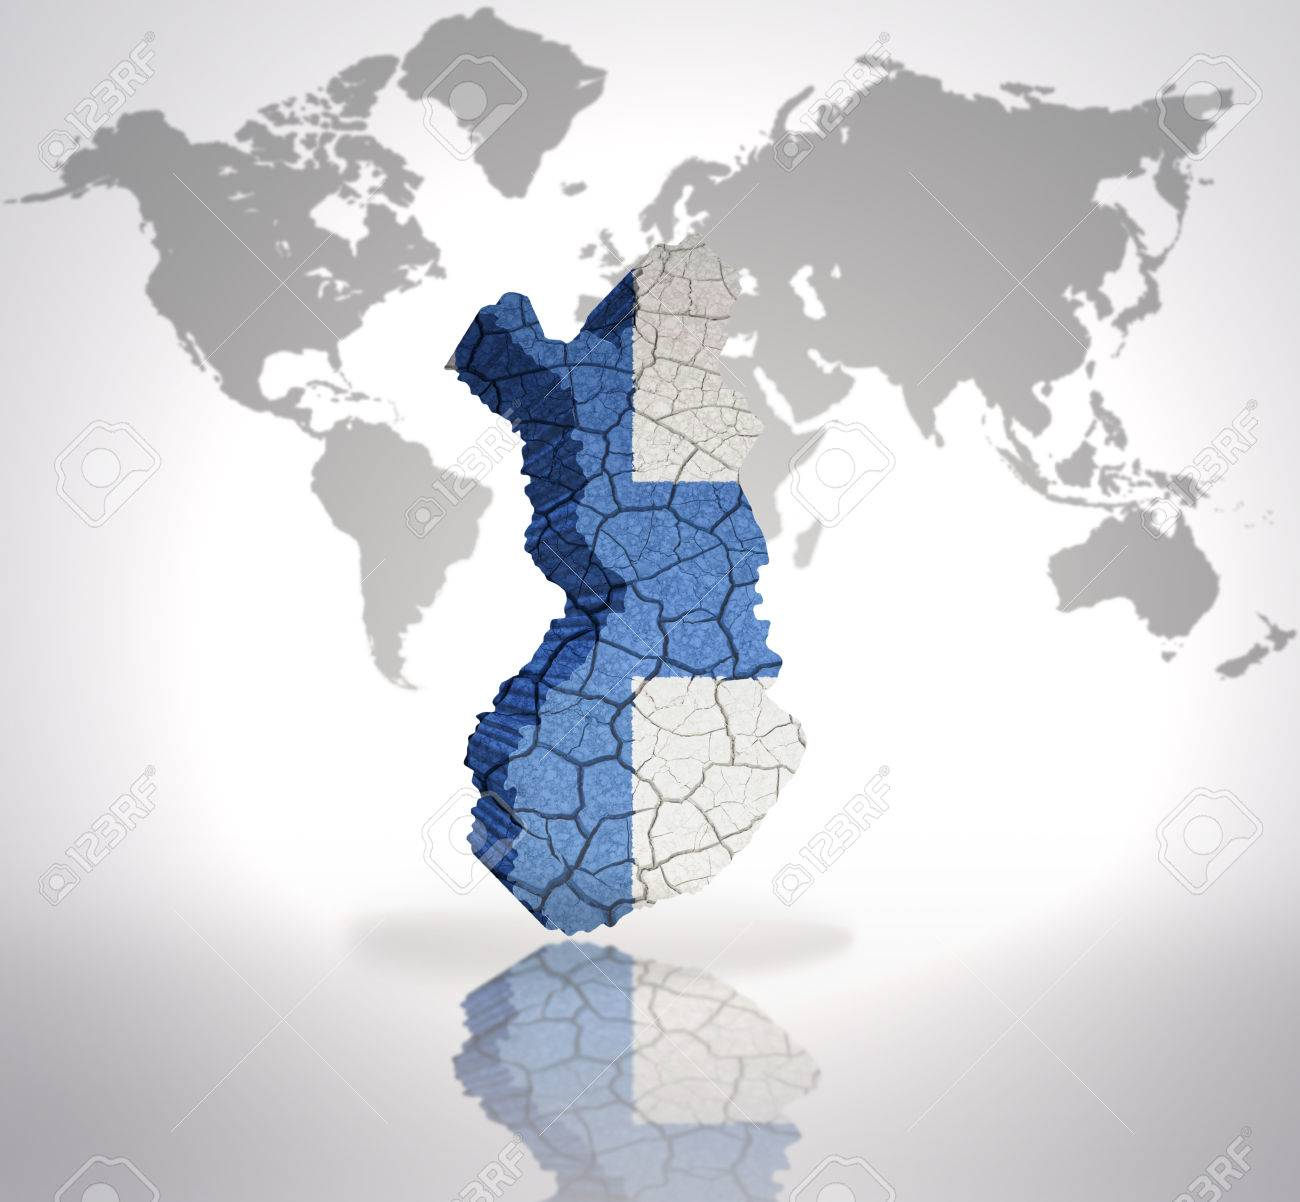 Map of finland with finnish flag on a world map background stock map of finland with finnish flag on a world map background stock photo 32714948 gumiabroncs Choice Image